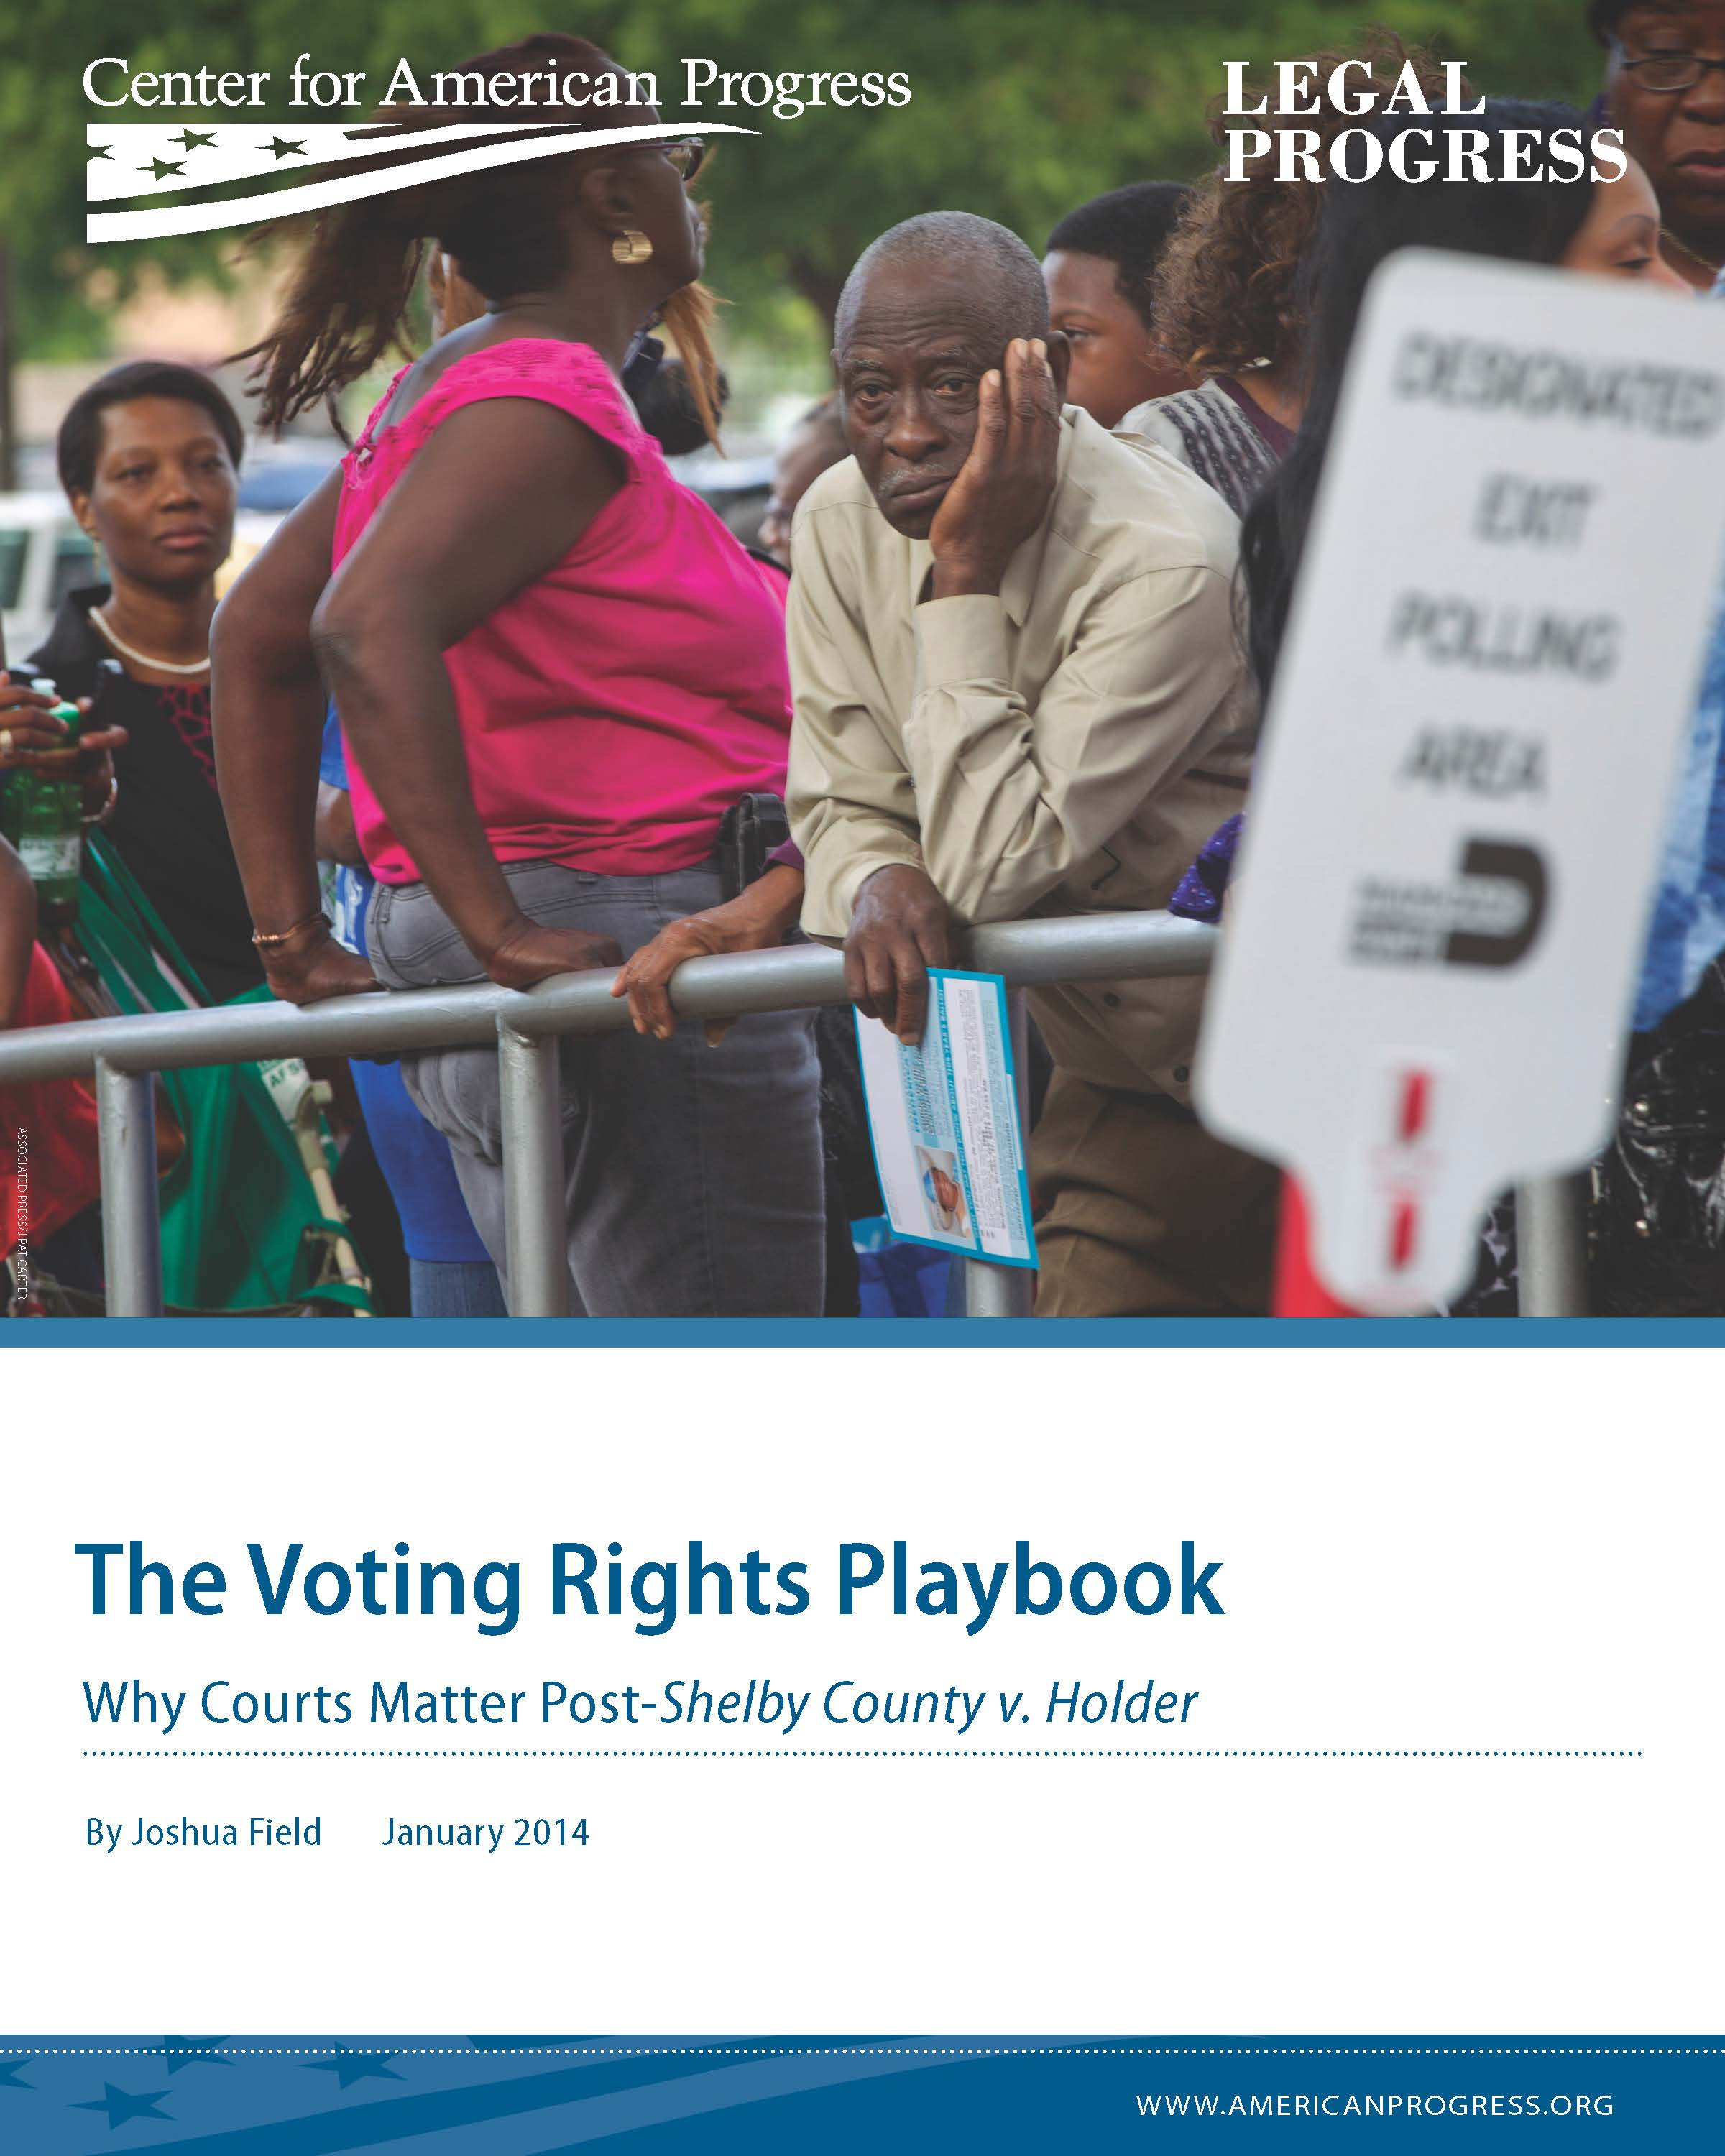 The Voting Rights Playbook